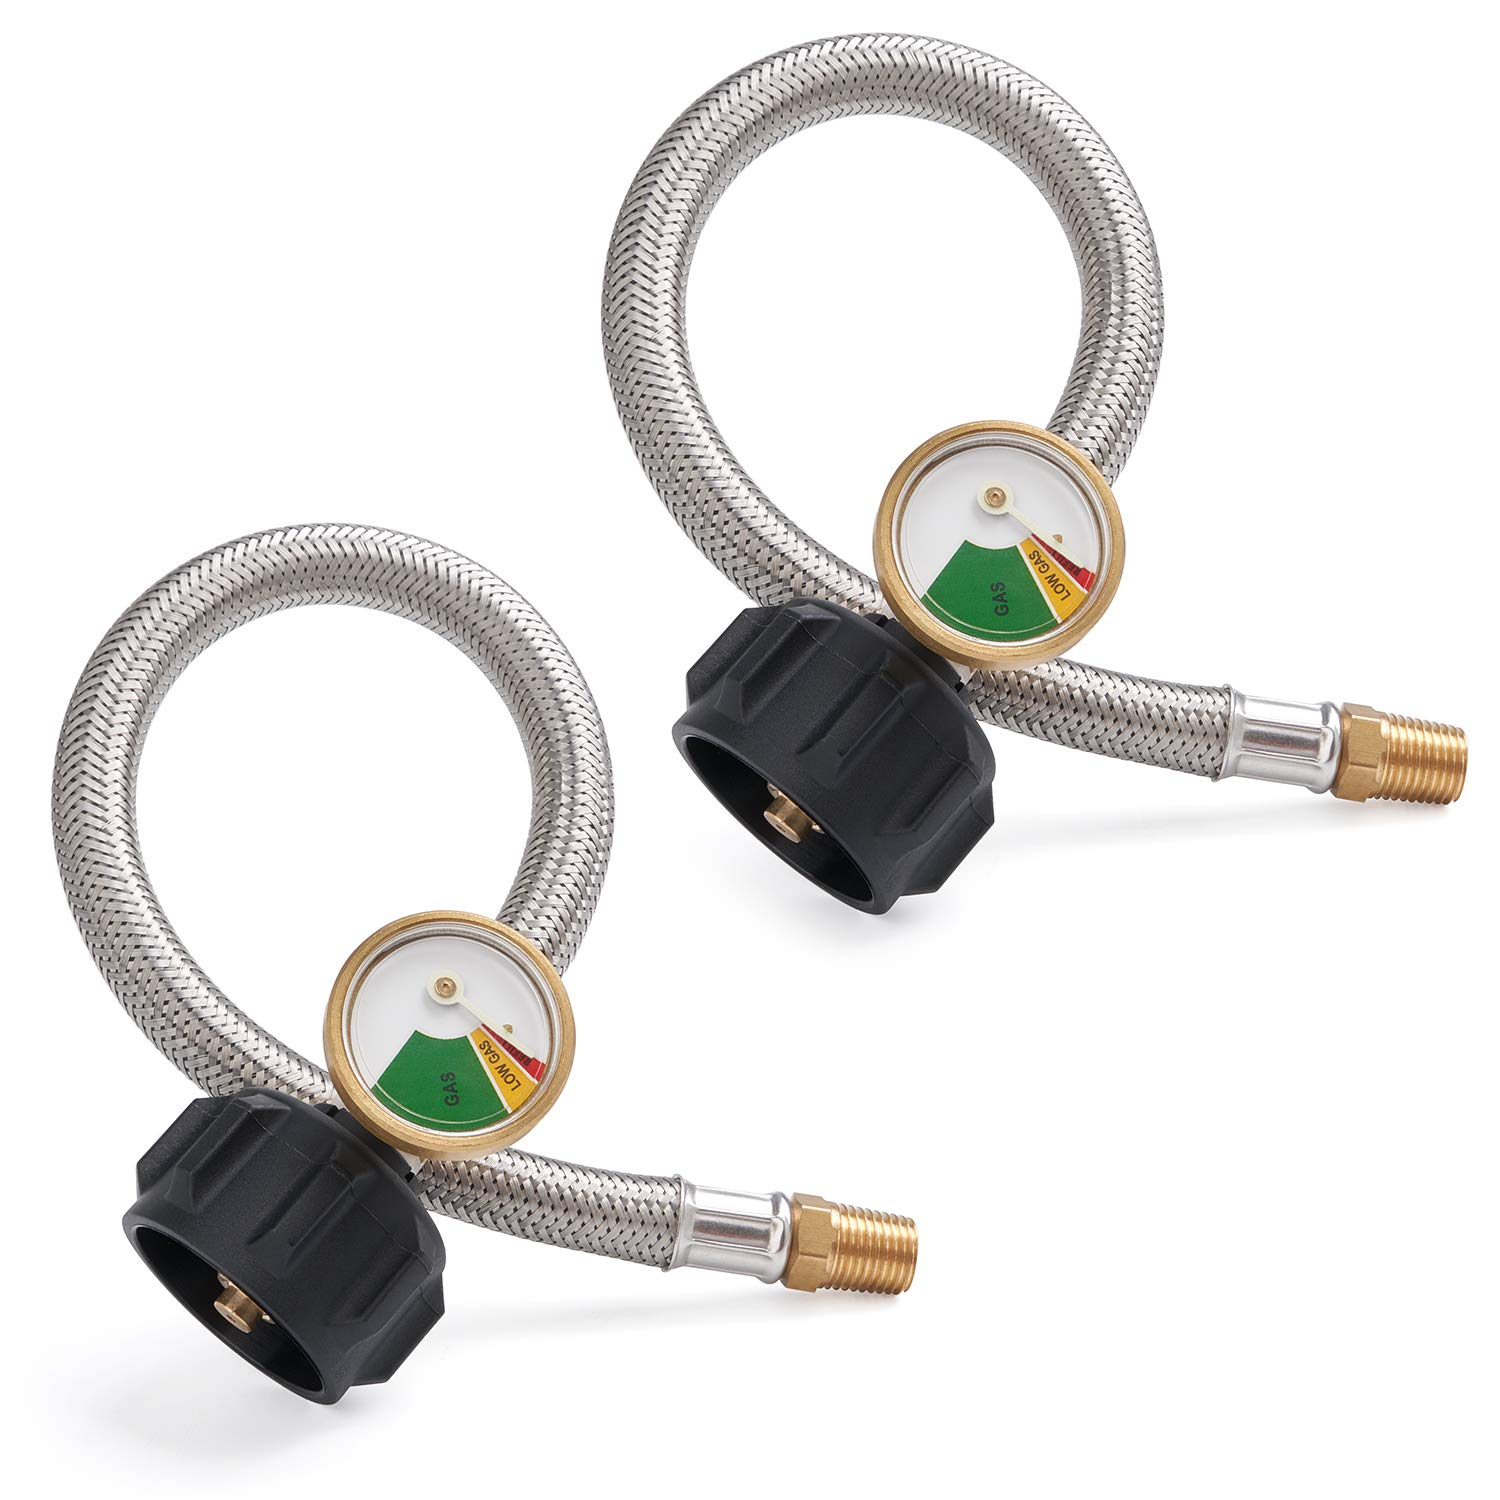 SHINESTAR 12-inch 1/4inch NPT RV Propane Hose with Gauge, Stainless Steel Braided RV Pigtail Hose Connector for Standard Two-Stage Regulator with 1/4inch Male NPT, 2 Pack by SHINESTAR